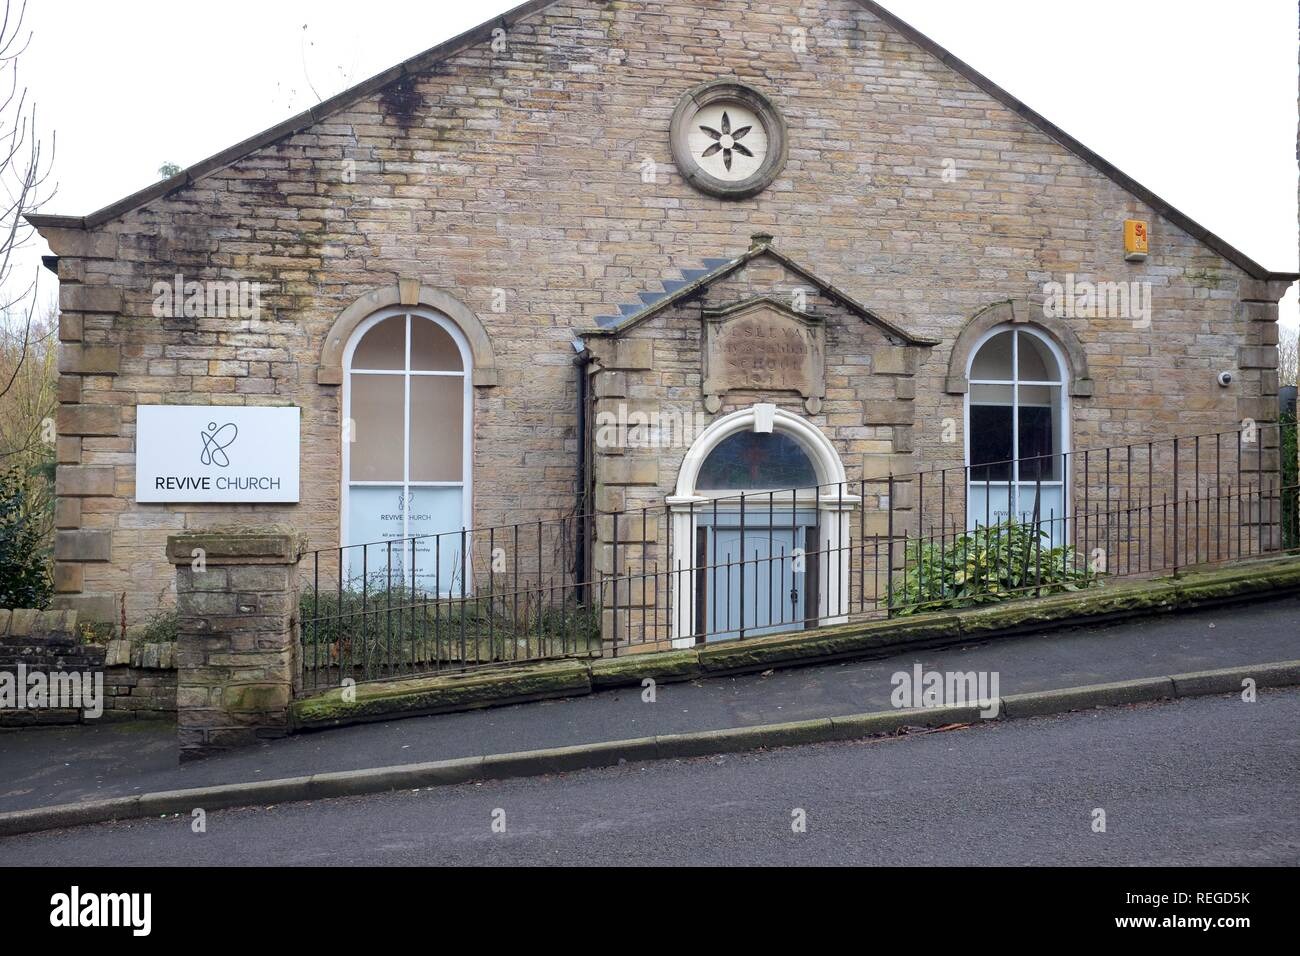 Revive Church on High Street, New Mills, Derbyshire - Stock Image